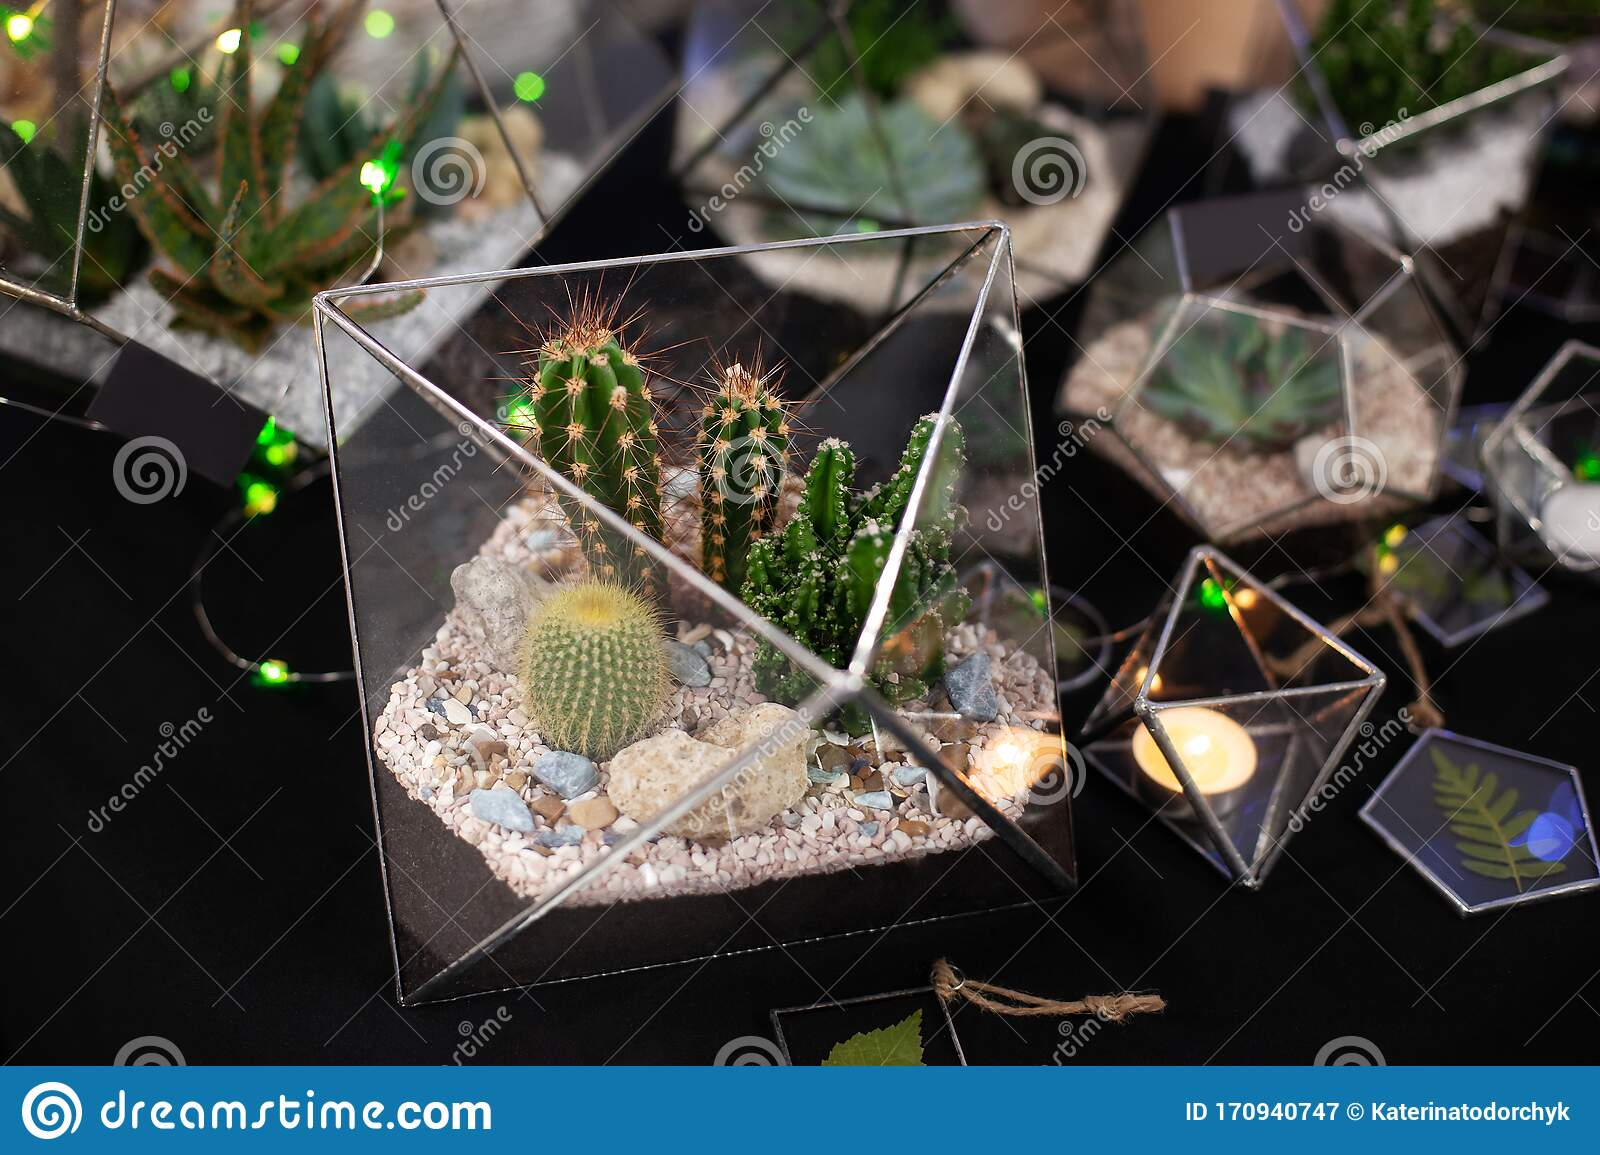 Florarium Composition Of Cactus And Succulents Stone And Sand Element Of Interior Home Decor Glass Terrarium Glass Florarium Stock Image Image Of Hobby Flowerpot 170940747